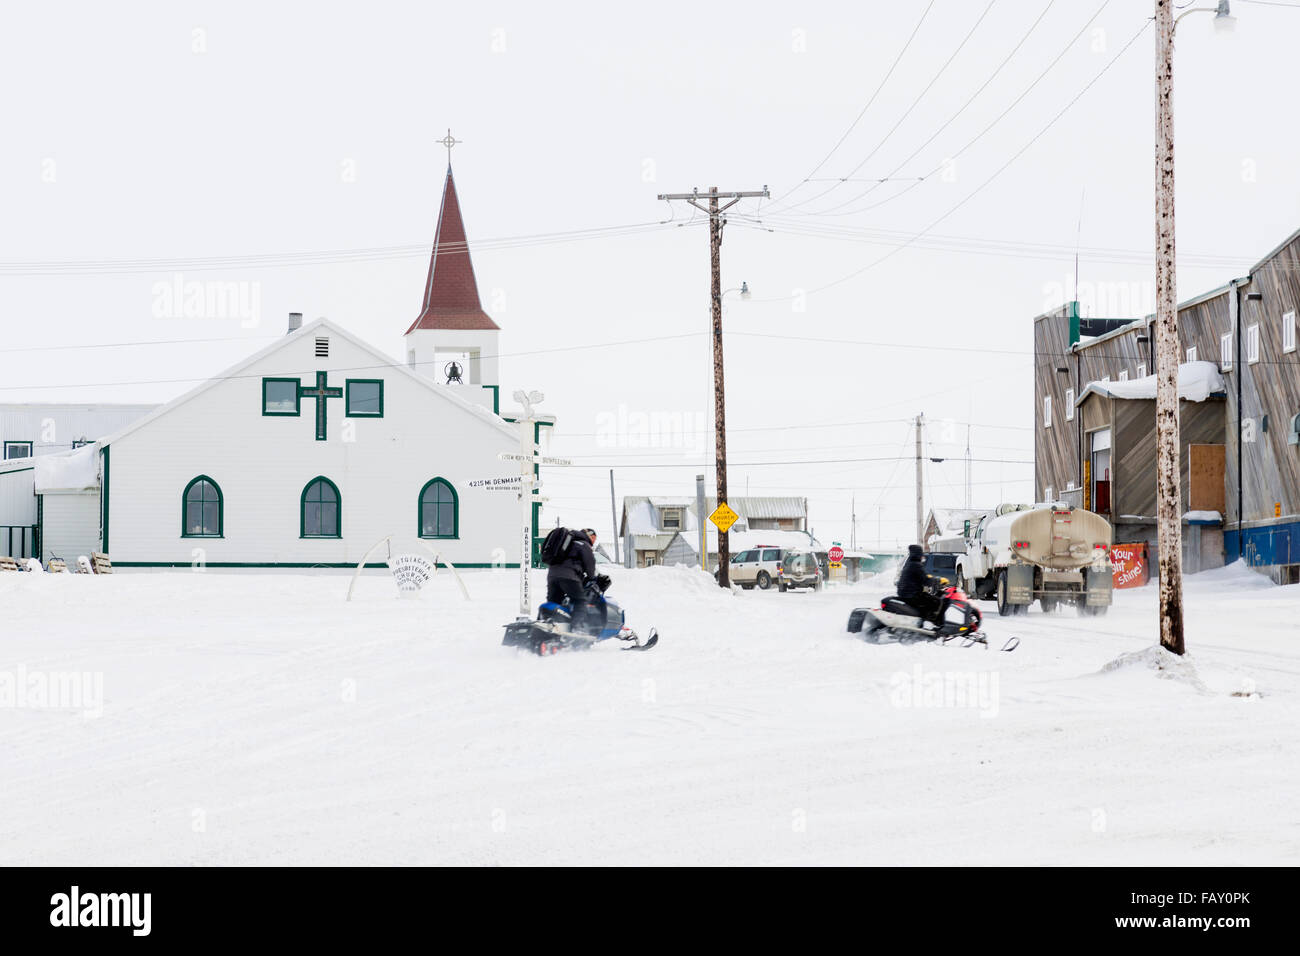 Two male native Alaskans ride snowmobiles in downtown Barrow, North Slope, Arctic Alaska, USA, Winter Stock Photo